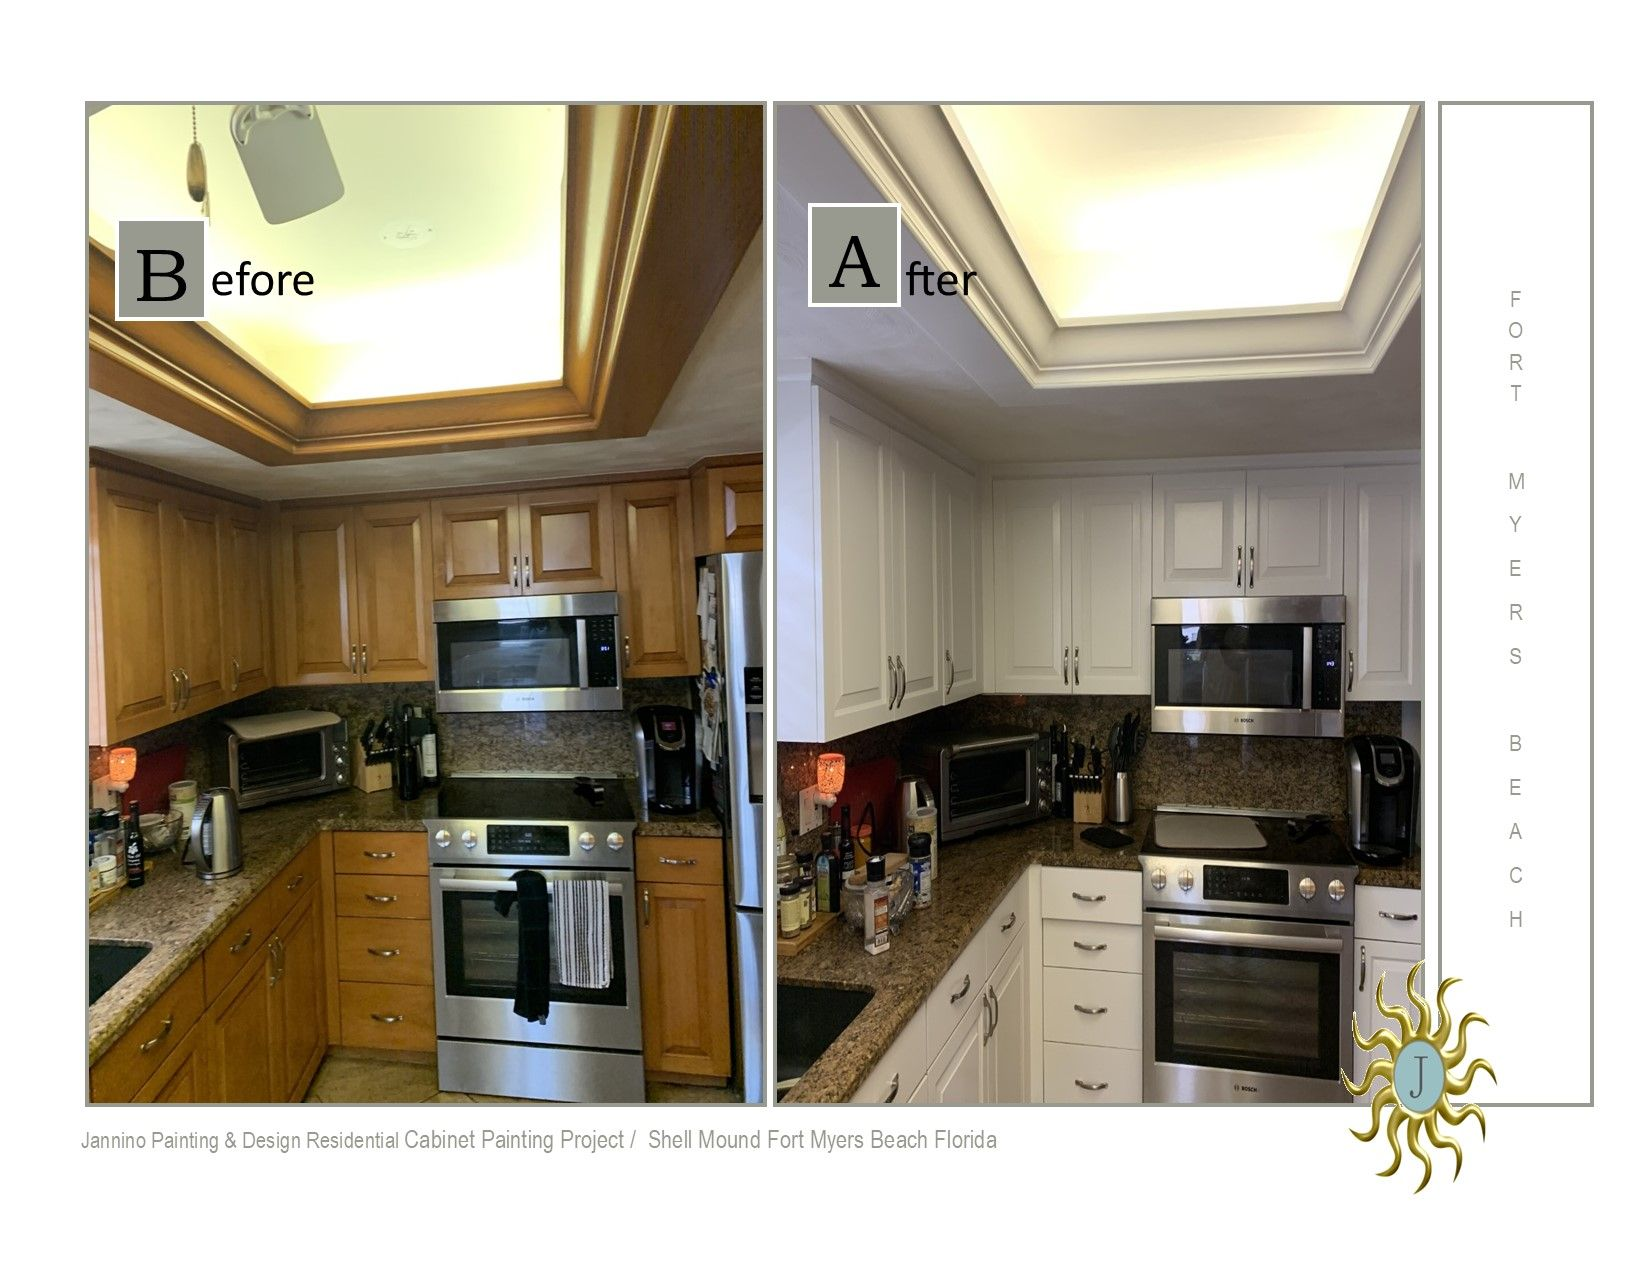 Before And After Cabinet Painting Project On Fort Myers Beach In 2020 Kitchen Cabinets Painted Before And After Residential Cabinets New England Style Homes